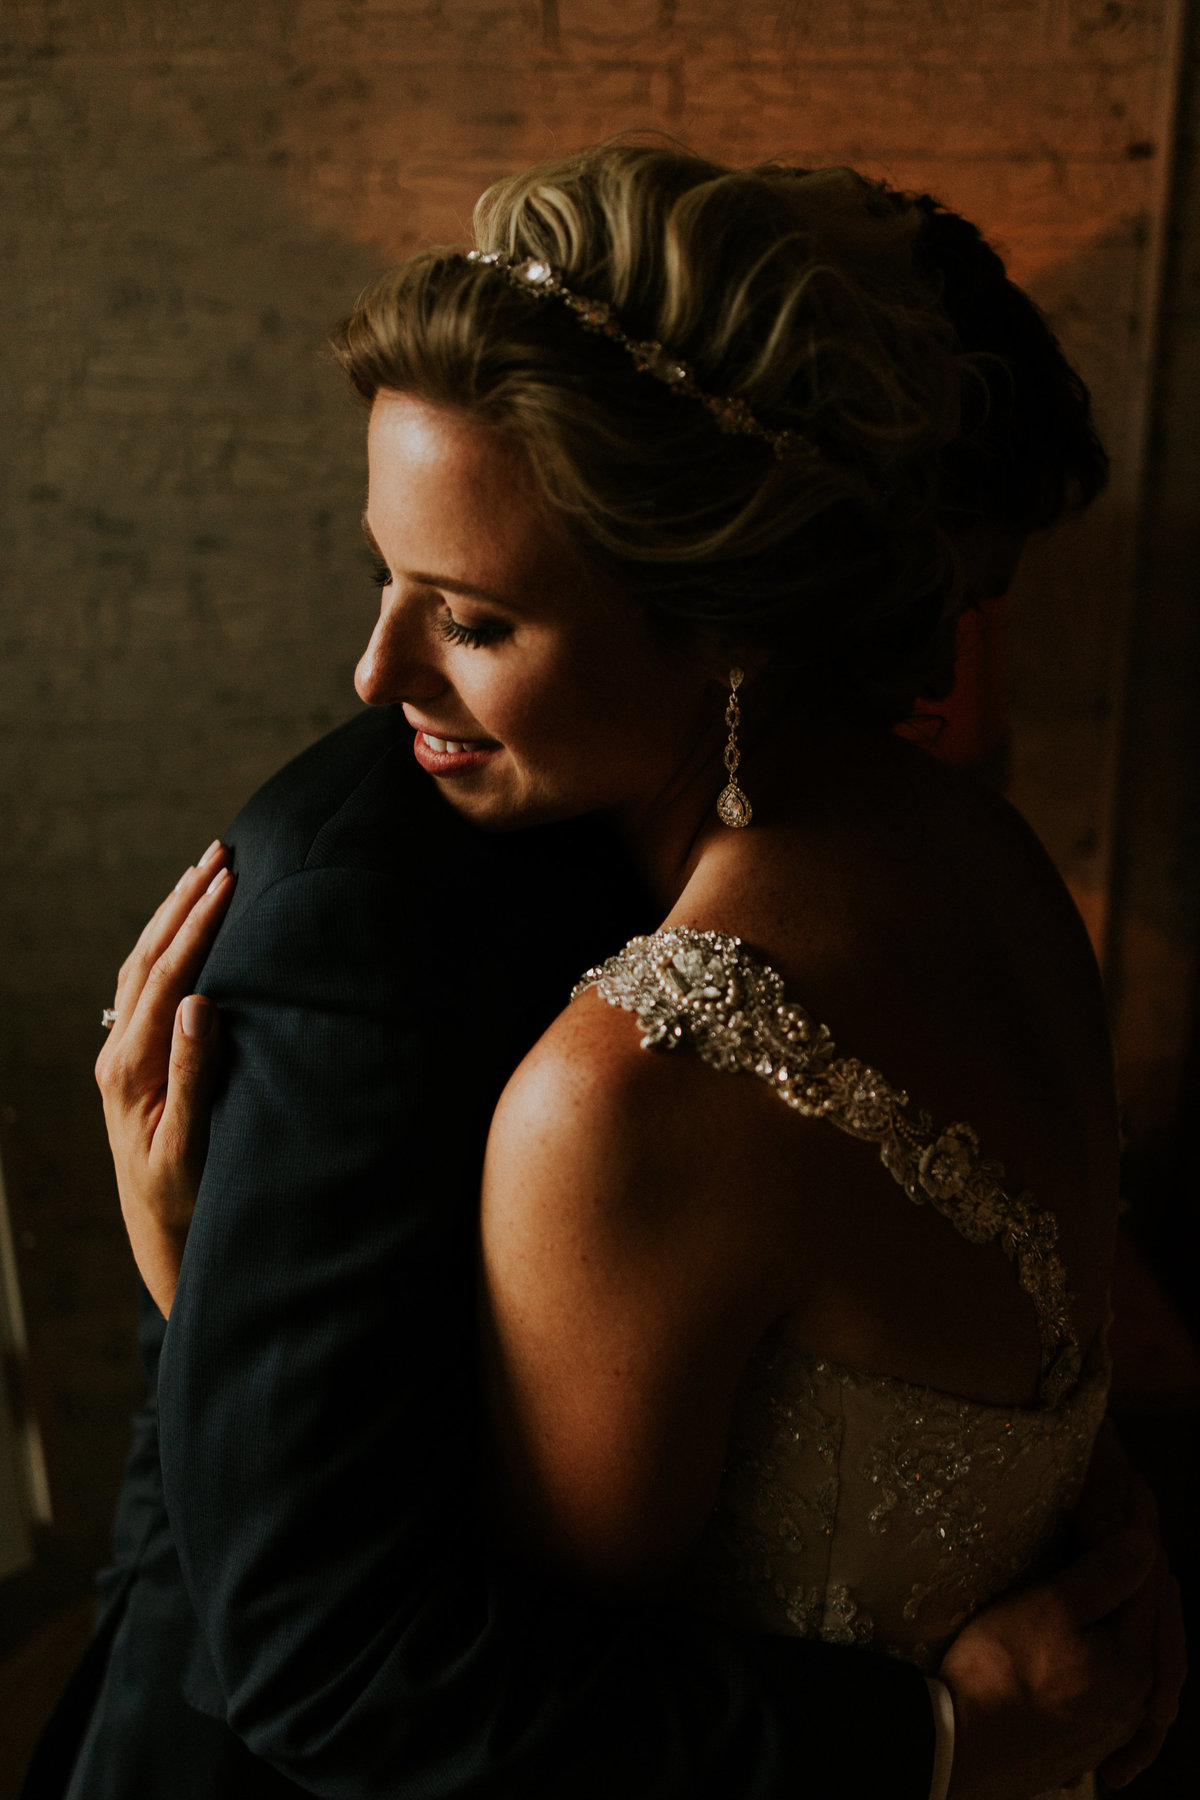 A bride and groom hug during their portraits for this unique photograph